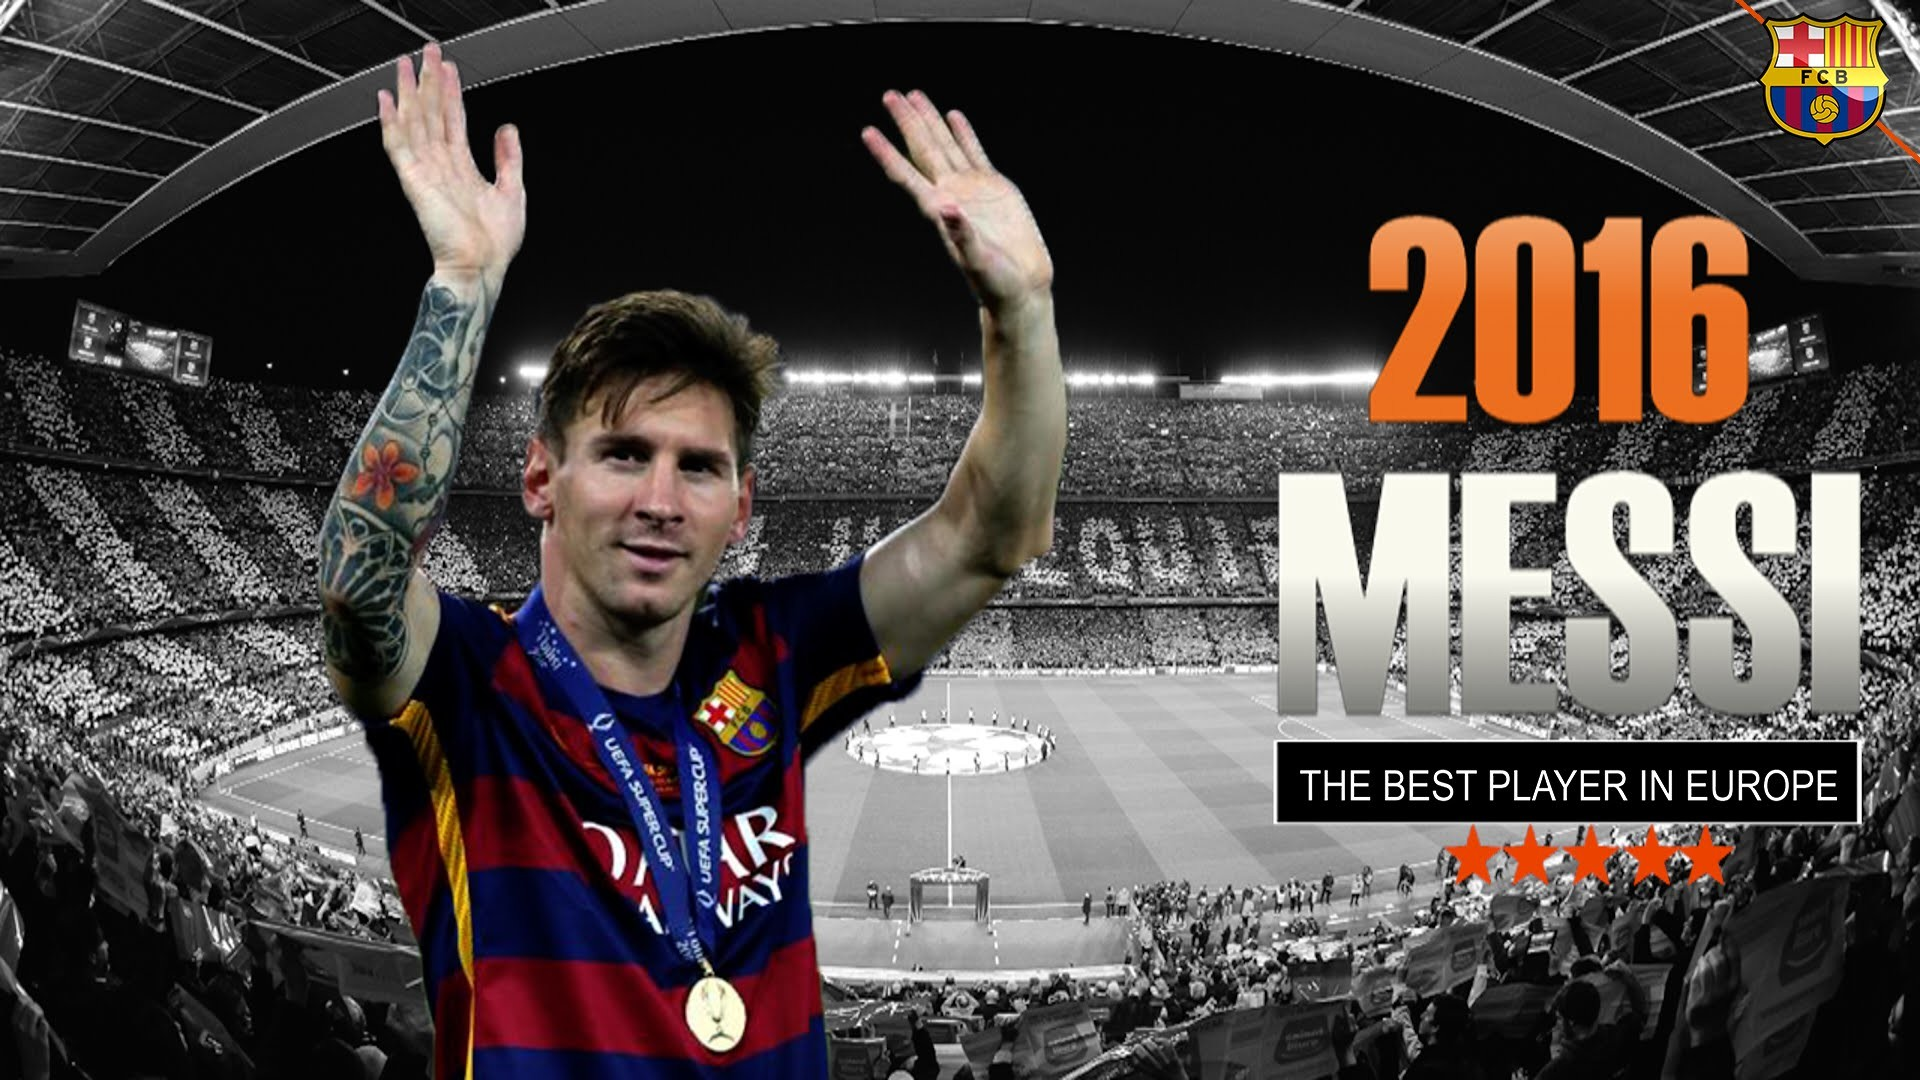 lionel-messi-wallpapers-2016-9